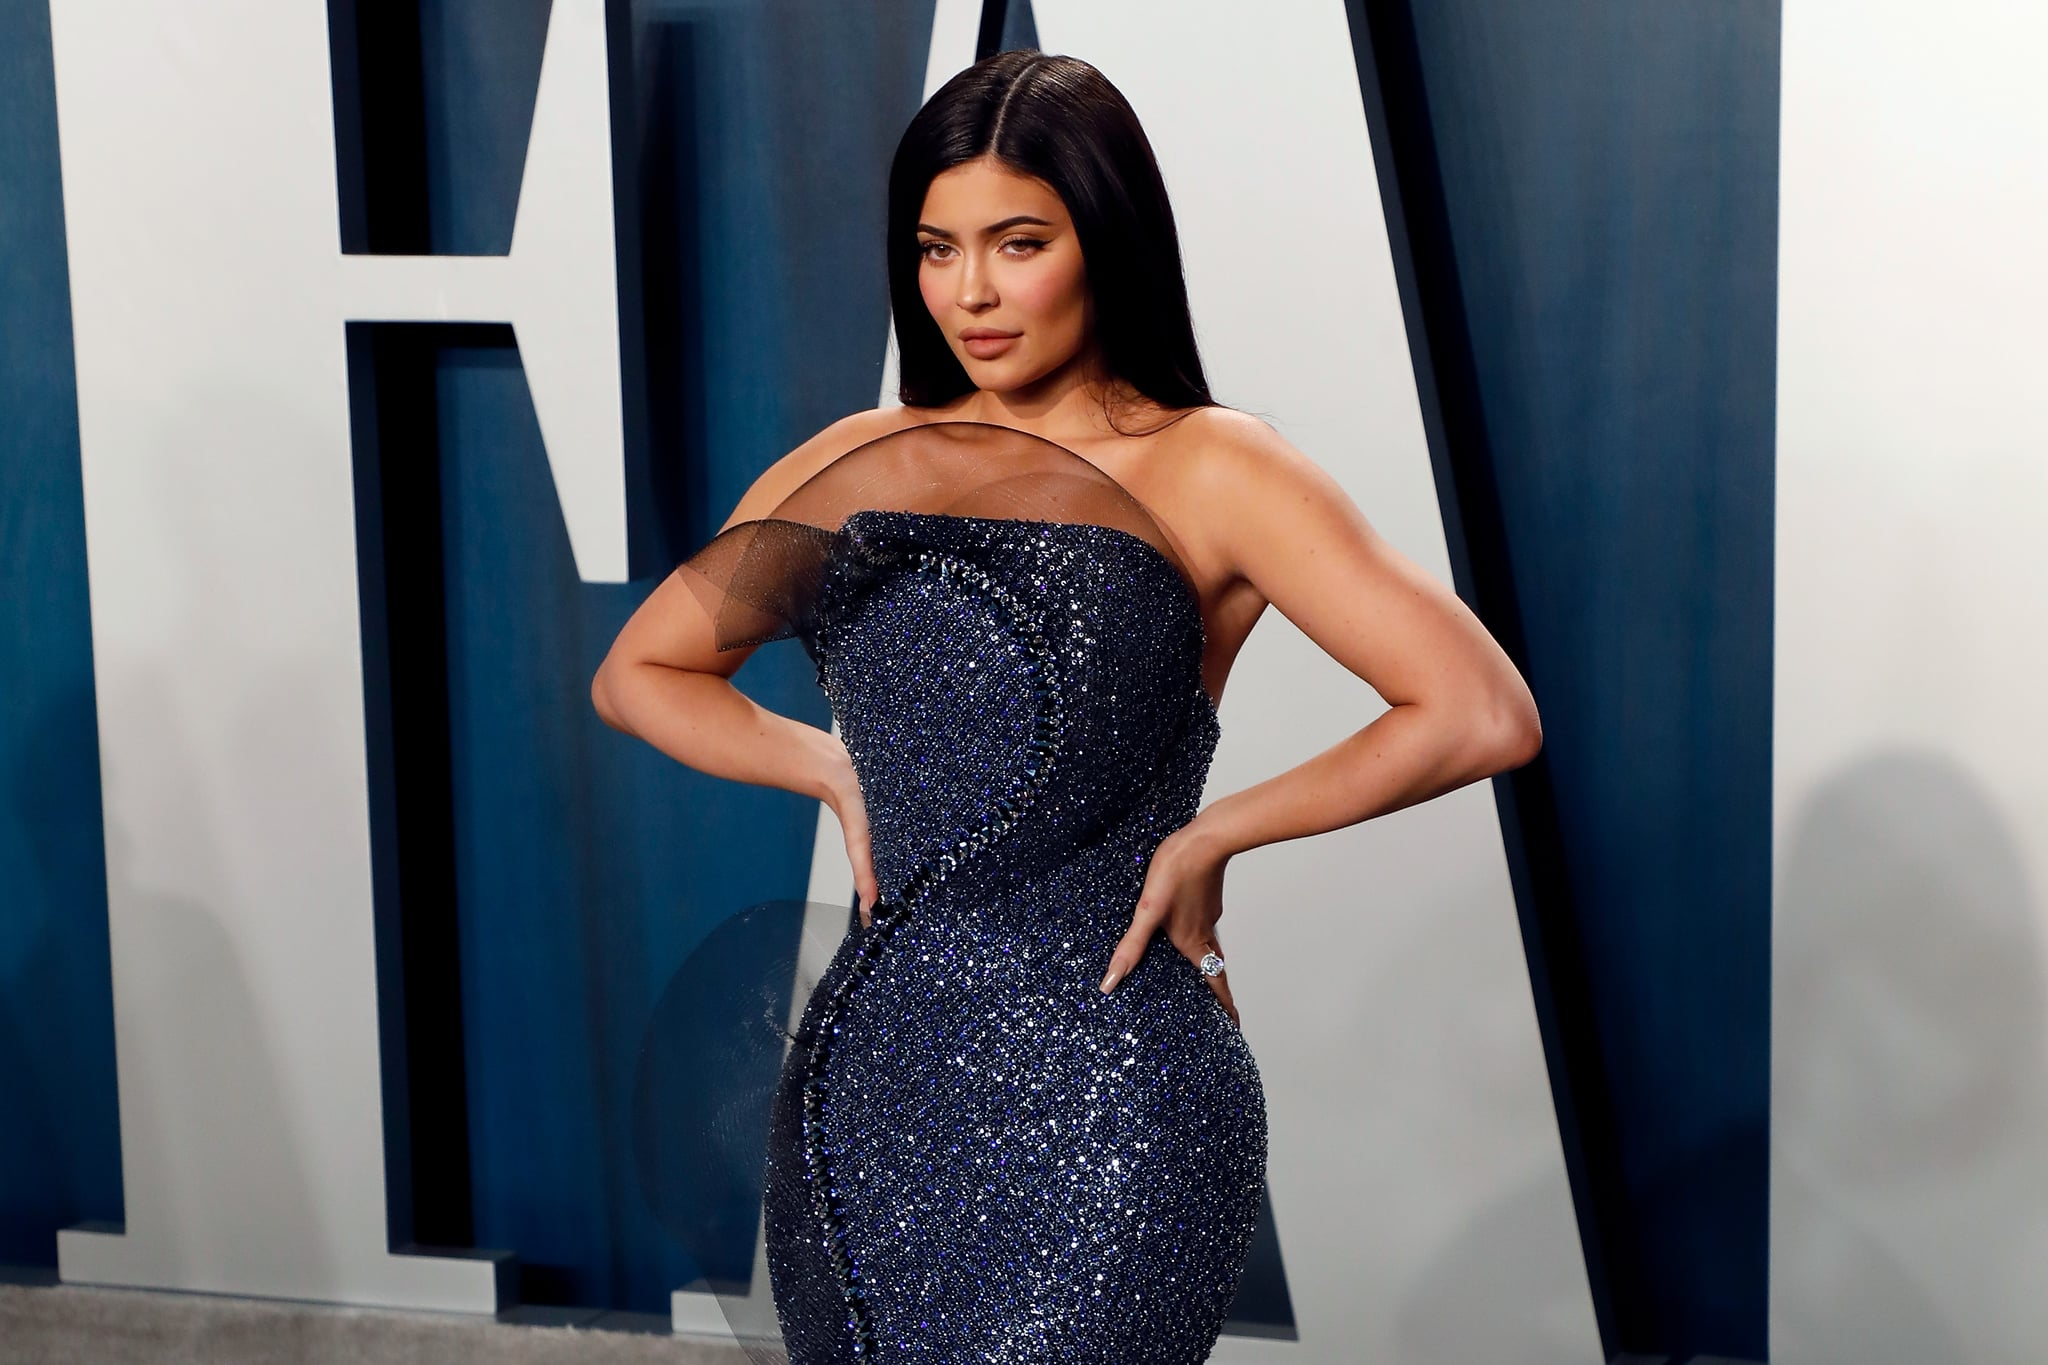 BEVERLY HILLS, CALIFORNIA - FEBRUARY 09: Kylie Jenner attends the 2020 Vanity Fair Oscar Party at Wallis Annenberg Centre for the Performing Arts on February 09, 2020 in Beverly Hills, California. (Photo by Taylor Hill/FilmMagic,)